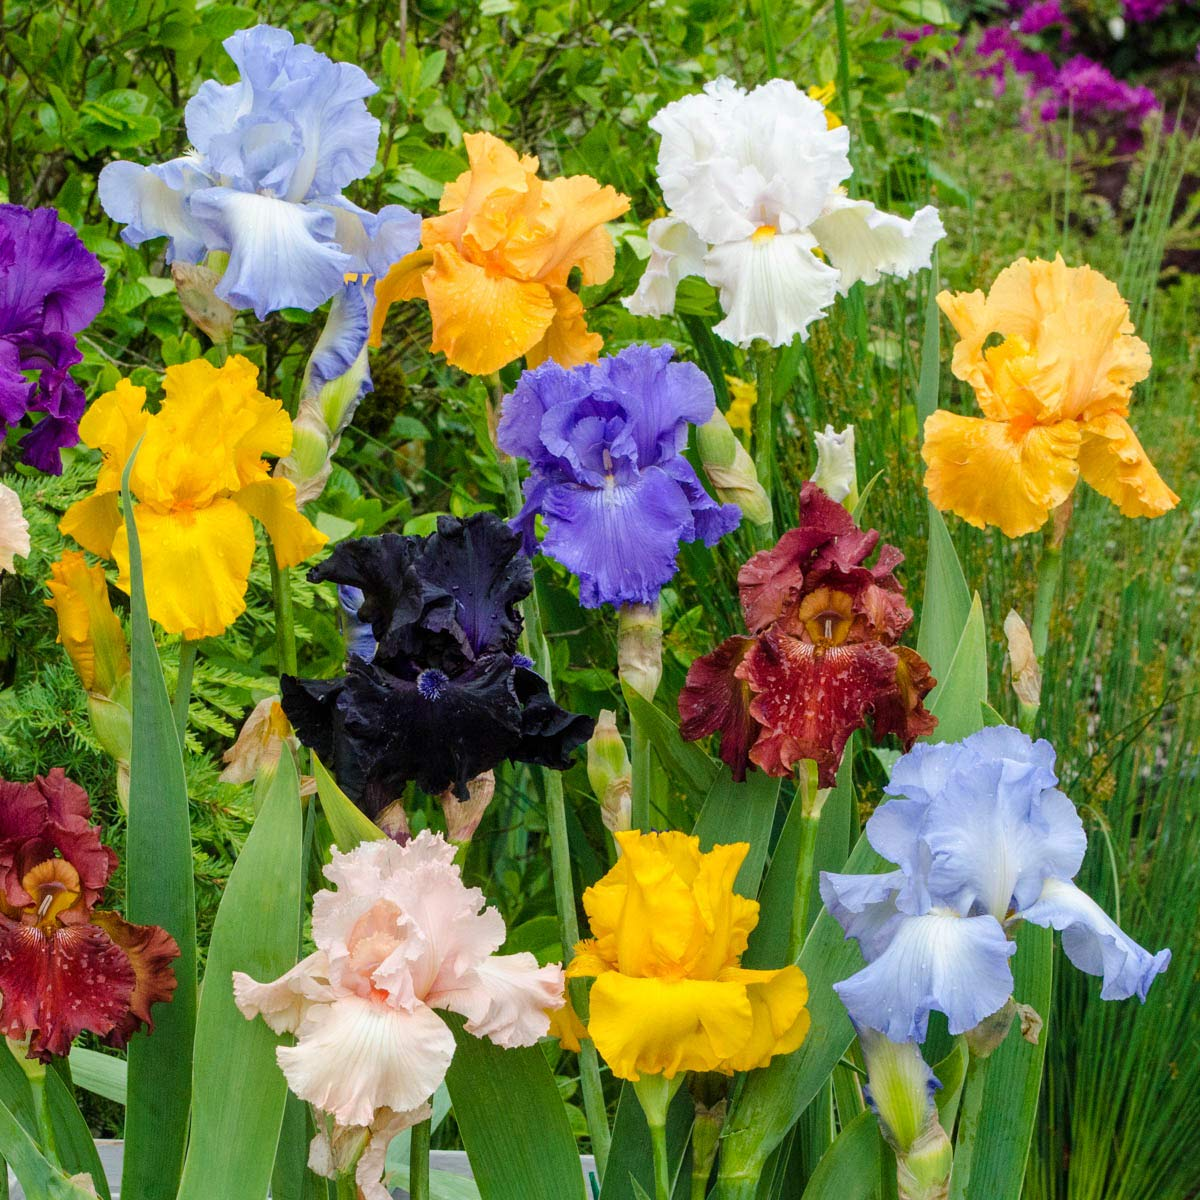 Breck's Bulbs and Perennials Reblooming Tall Bearded Bare Root Iris Mixture - Specially Selected Mixture of Colourful German Irises Will Bloom not Once, but Twice! Includes 5 Rhizomes per Order. by BRECK'S